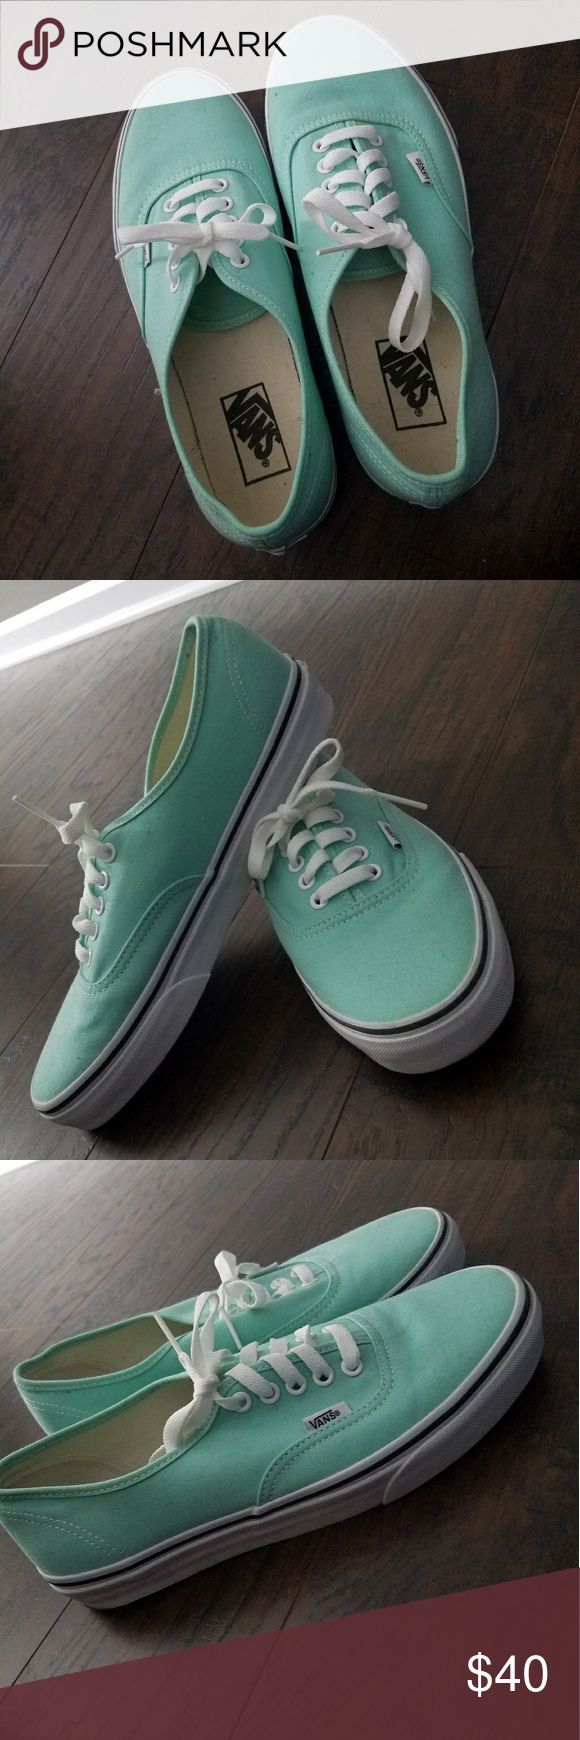 Teal Vans sneakers Teal Van sneakers very good condition Vans Shoes Sneakers